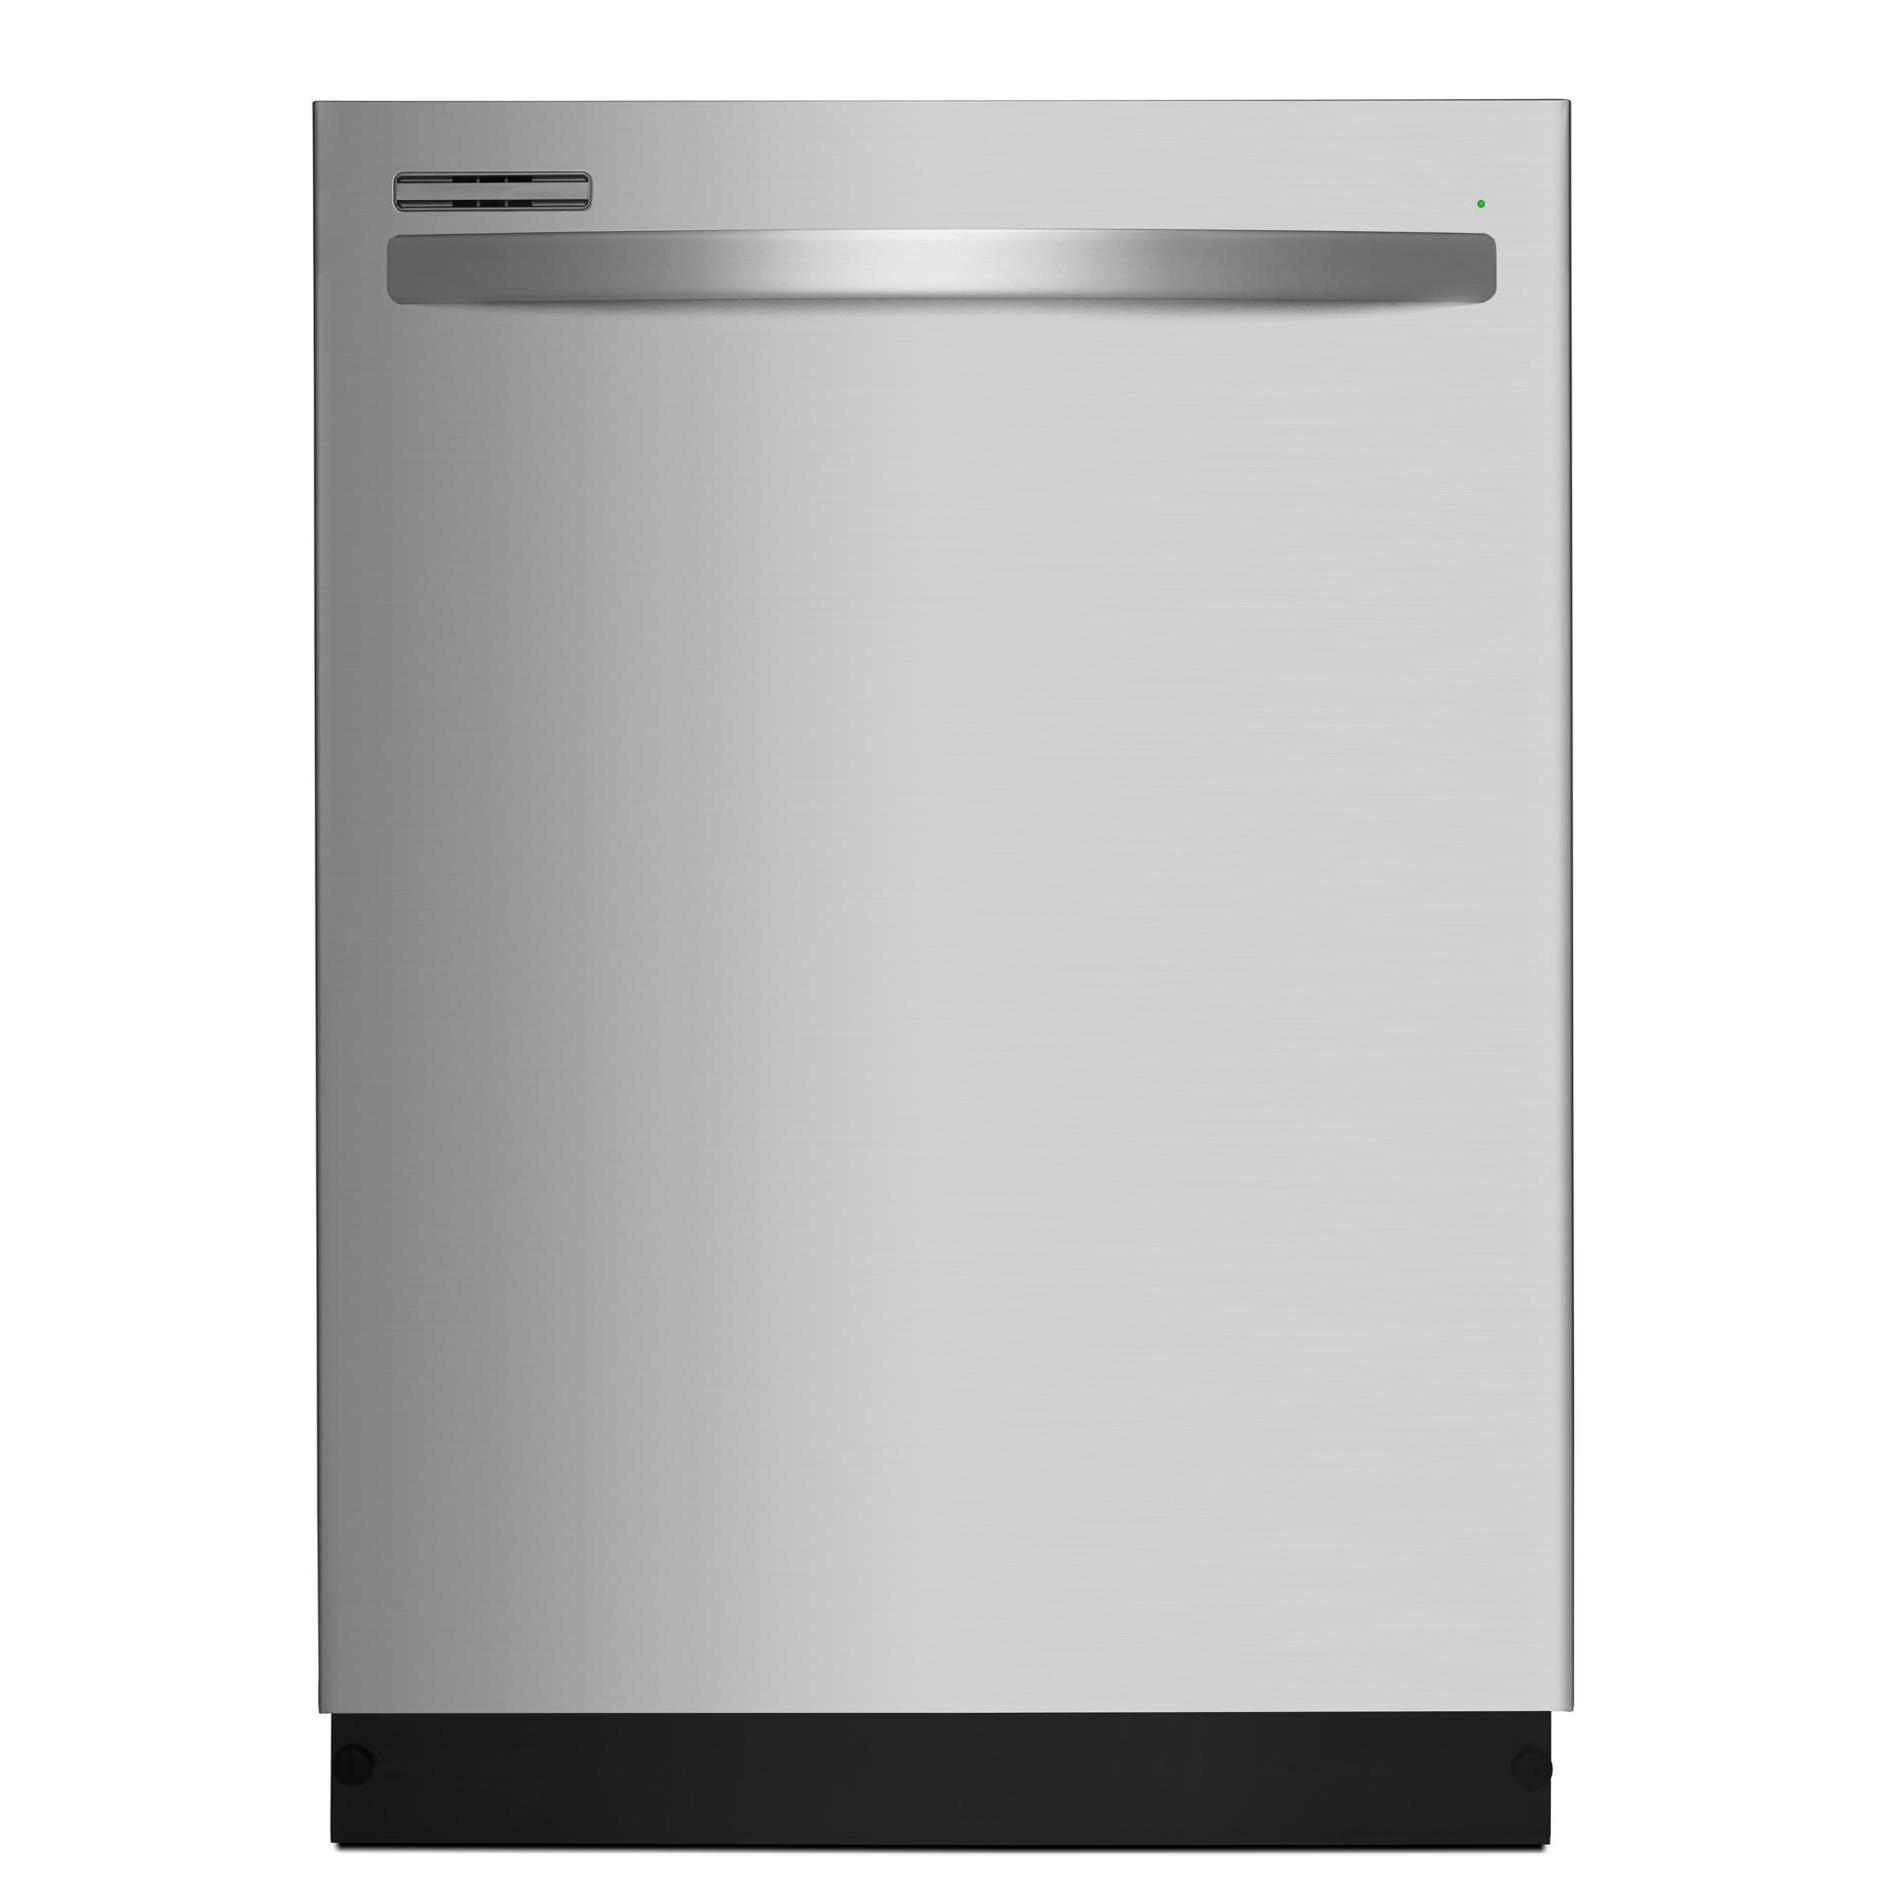 13473-24-Built-In-Dishwasher-w-PowerWave%E2%84%A2-Spray-Arm-Stainless-Steel